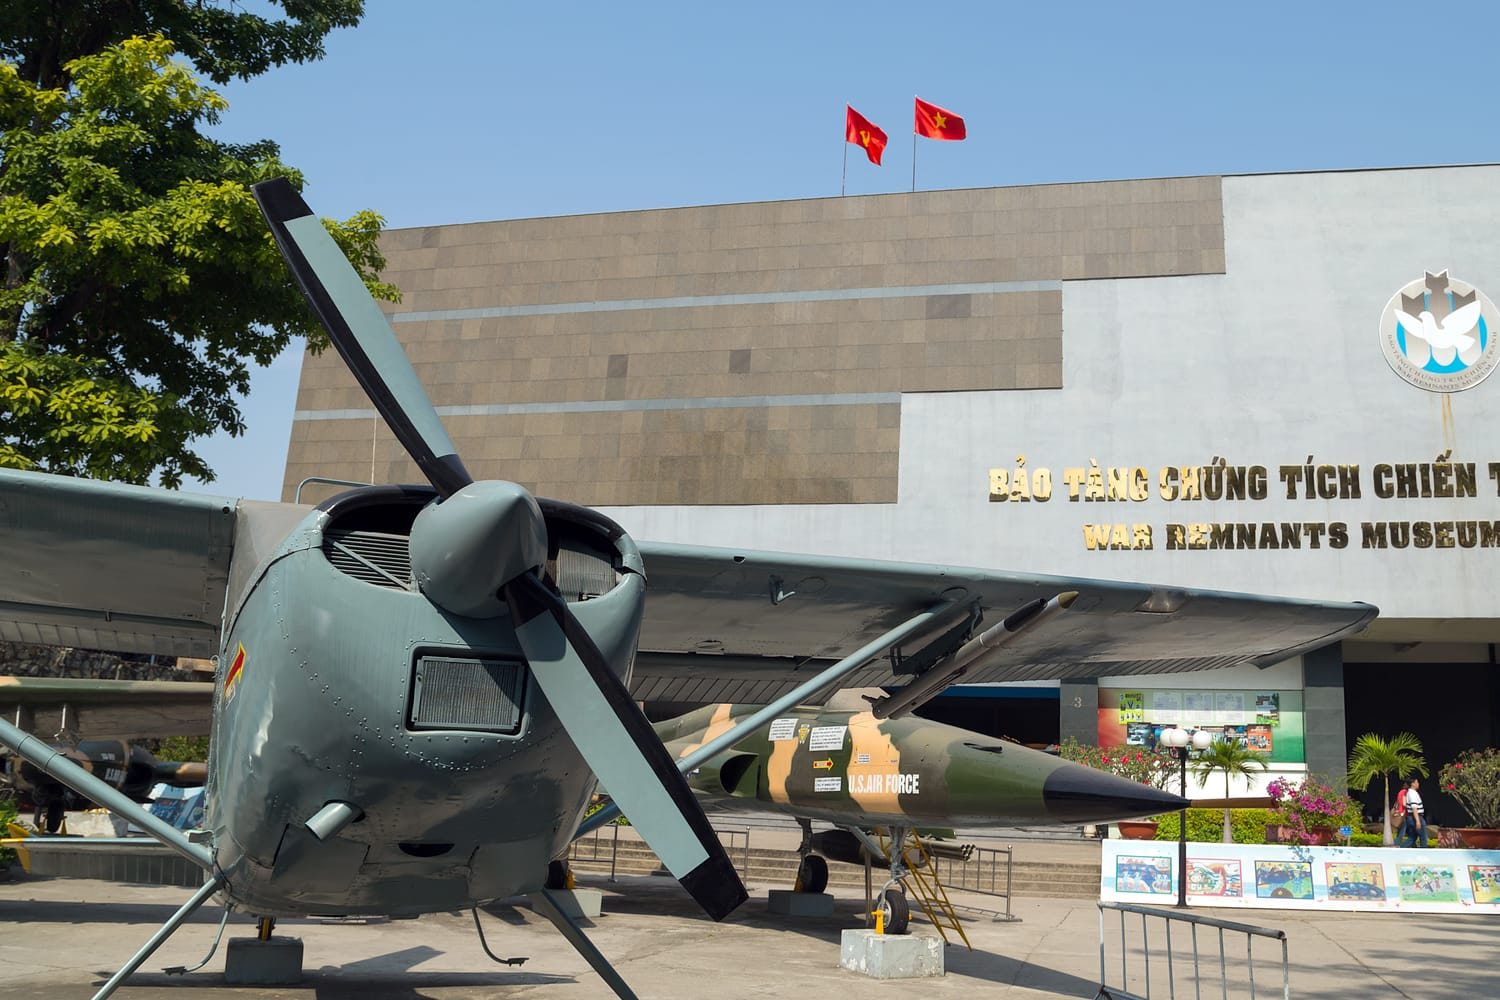 War Remnants Museum in Ho Chi Minh City, Vietnam